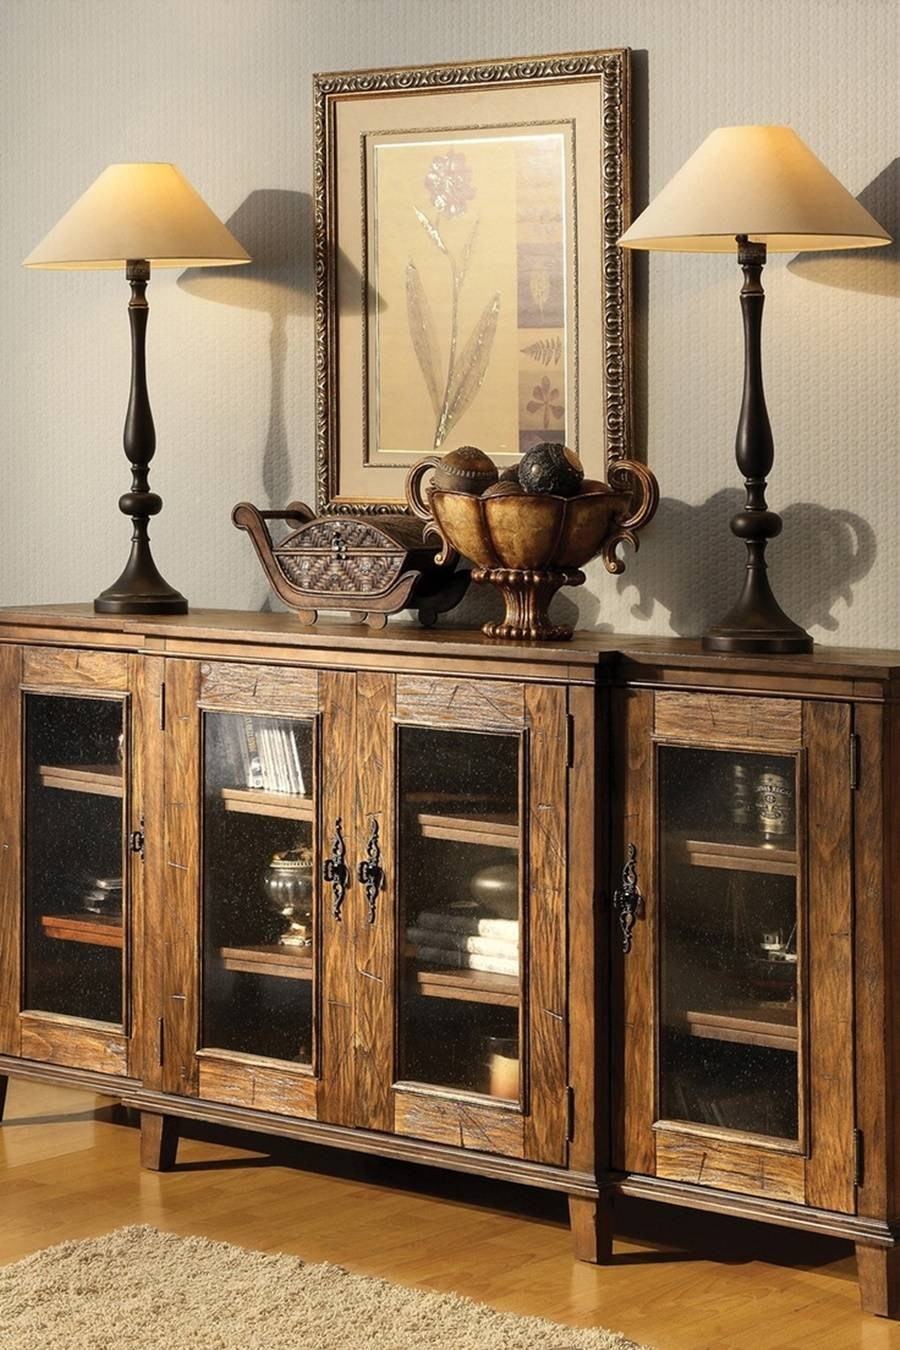 Inspiration about Rustic Sideboard Ideas : Uses Rustic Sideboard Furniture – Gazebo Inside Latest Rustic Sideboard Furniture (#3 of 15)